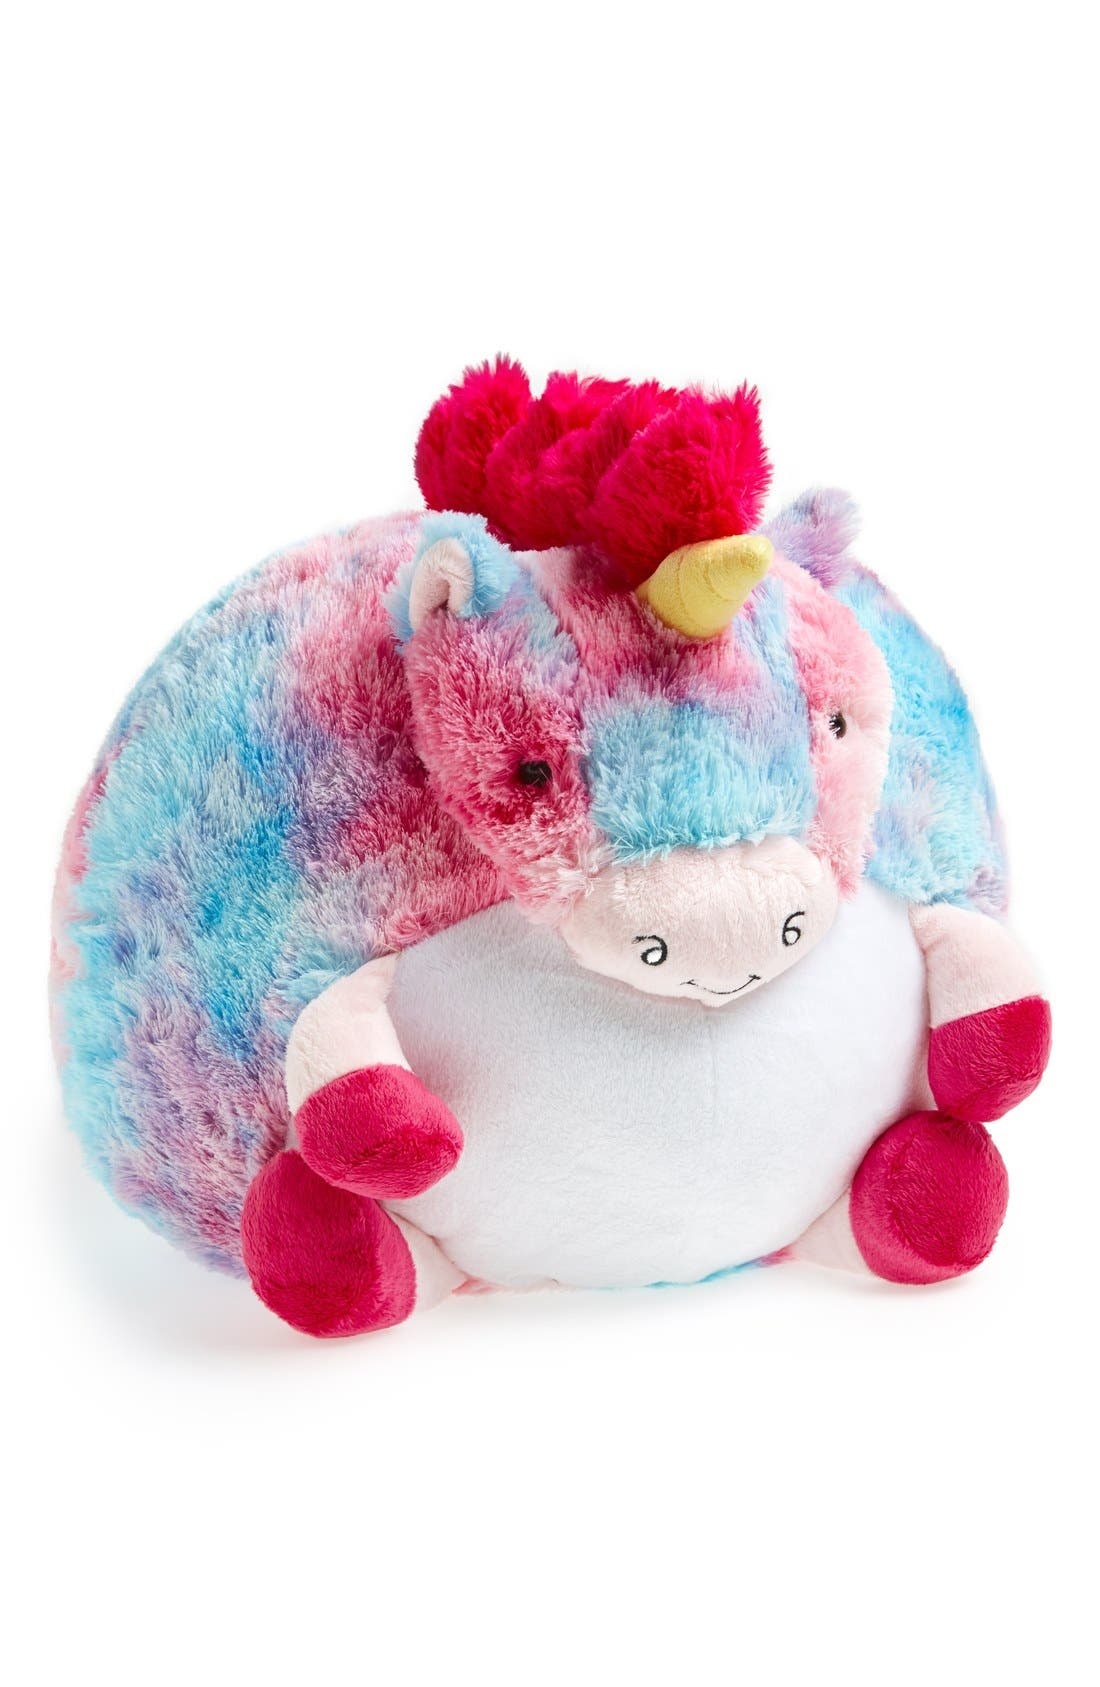 Alternate Image 3  - Squishable 'Unicorn - Prism' Plush Stuffed Animal